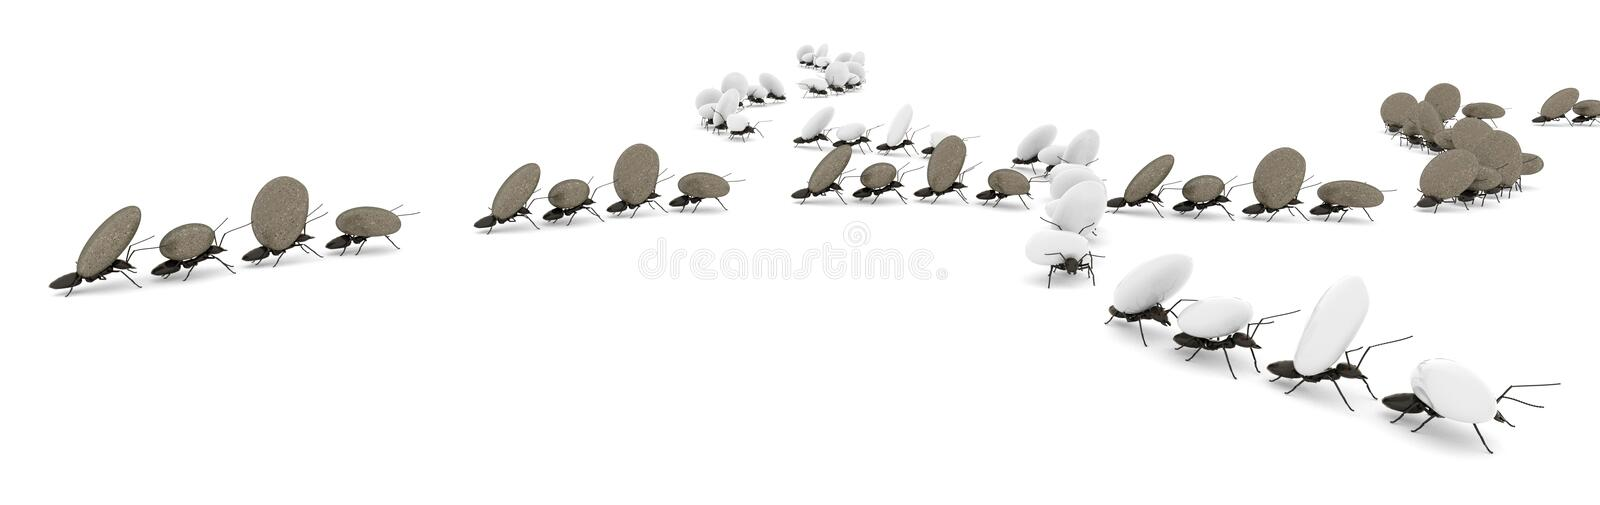 concept work, team of ants royalty free illustration